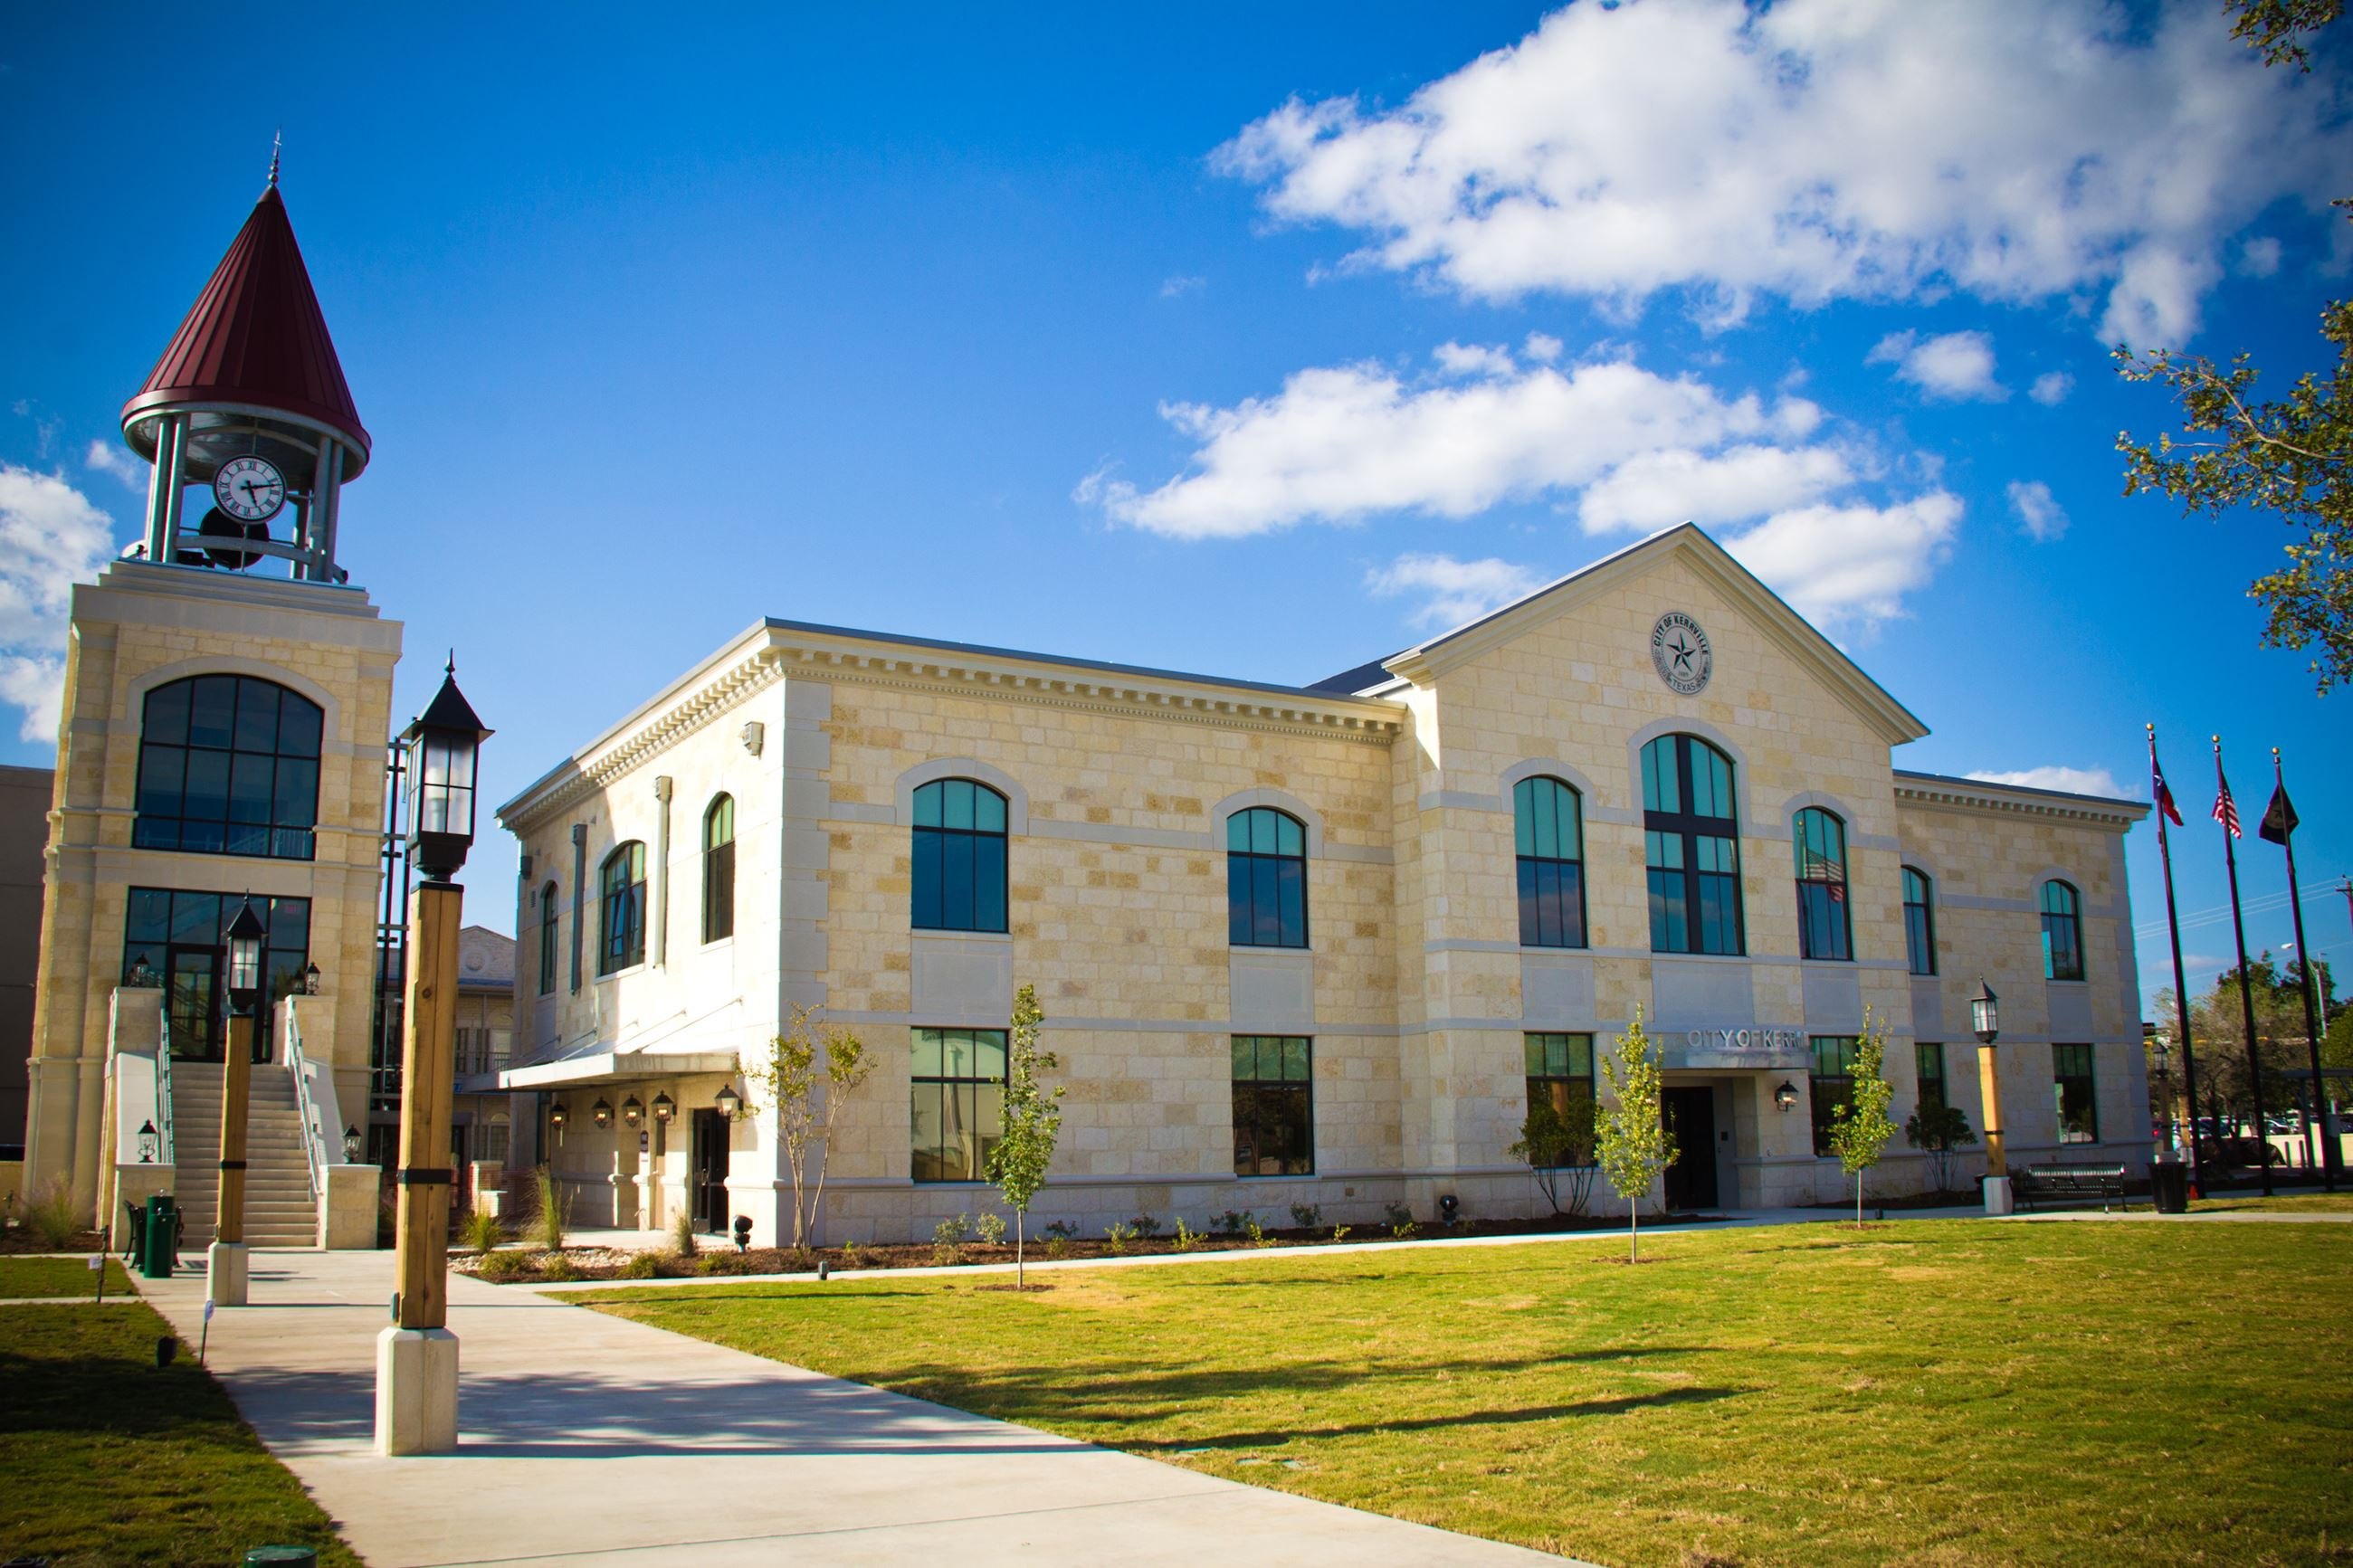 Facilities • Kerrville • CivicEngage